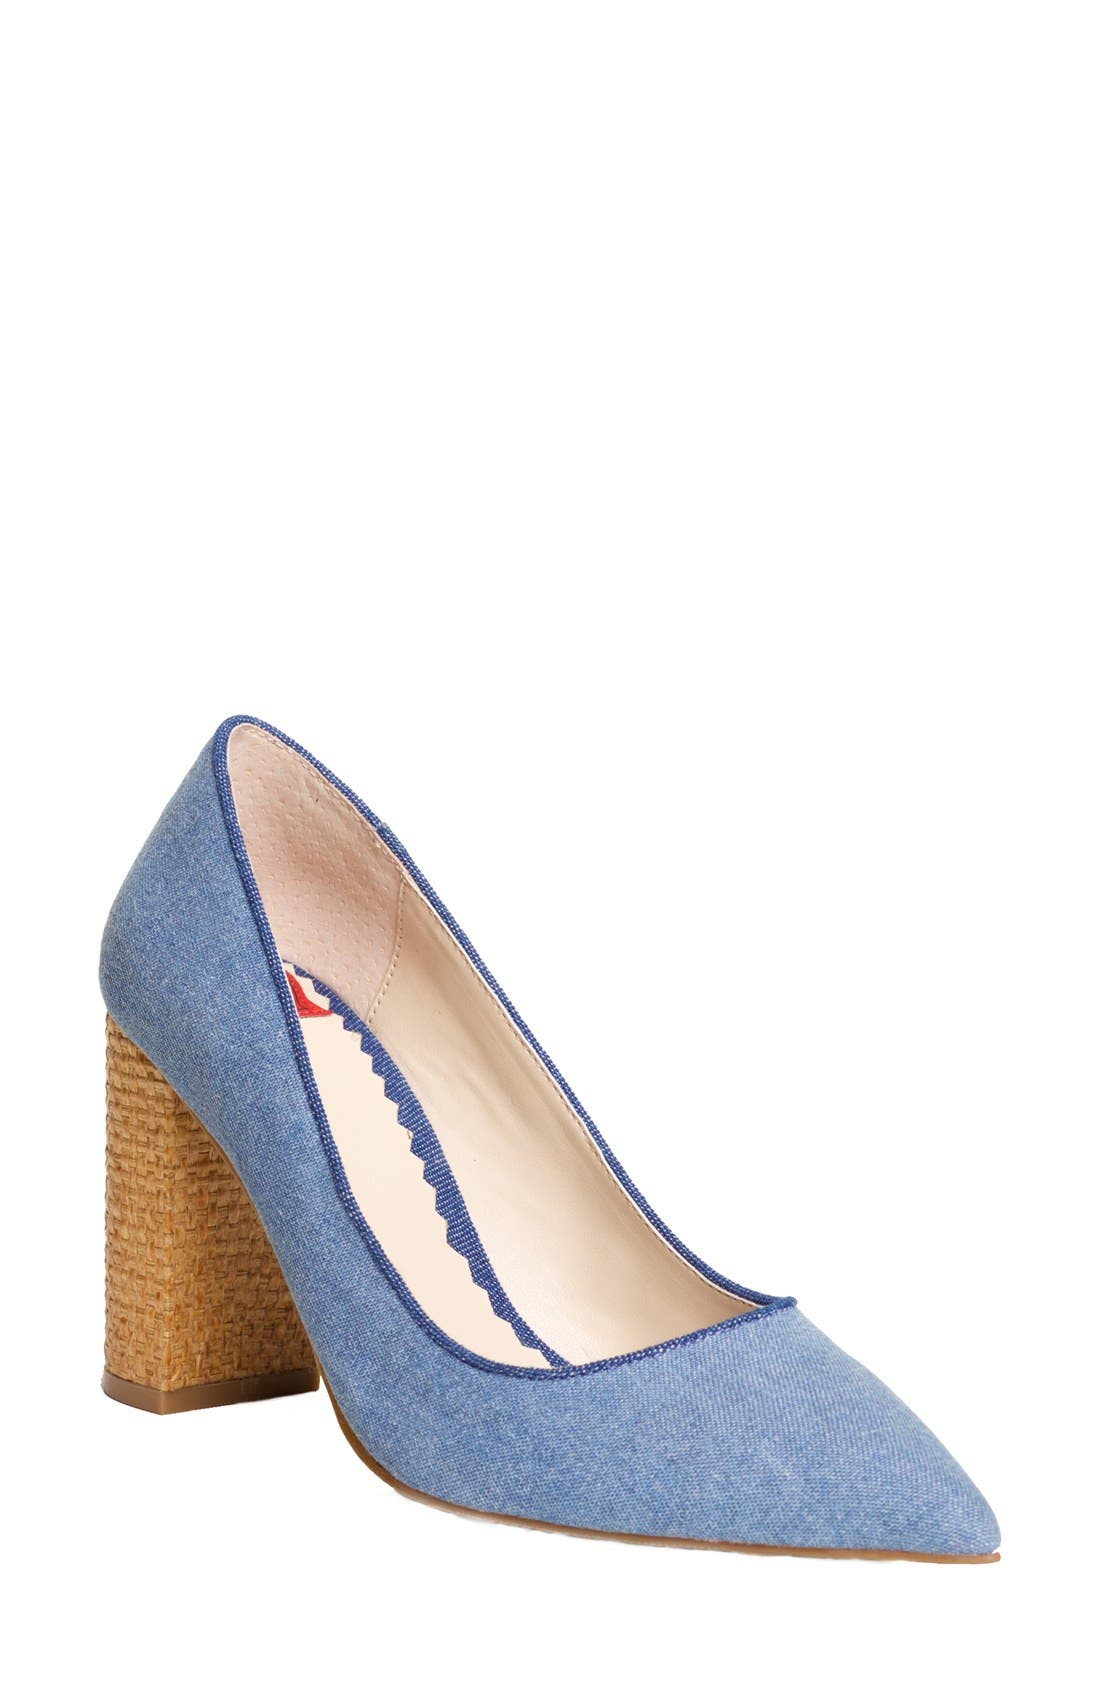 'OMG' Pointy Toe Pump,                             Main thumbnail 1, color,                             Light Blue